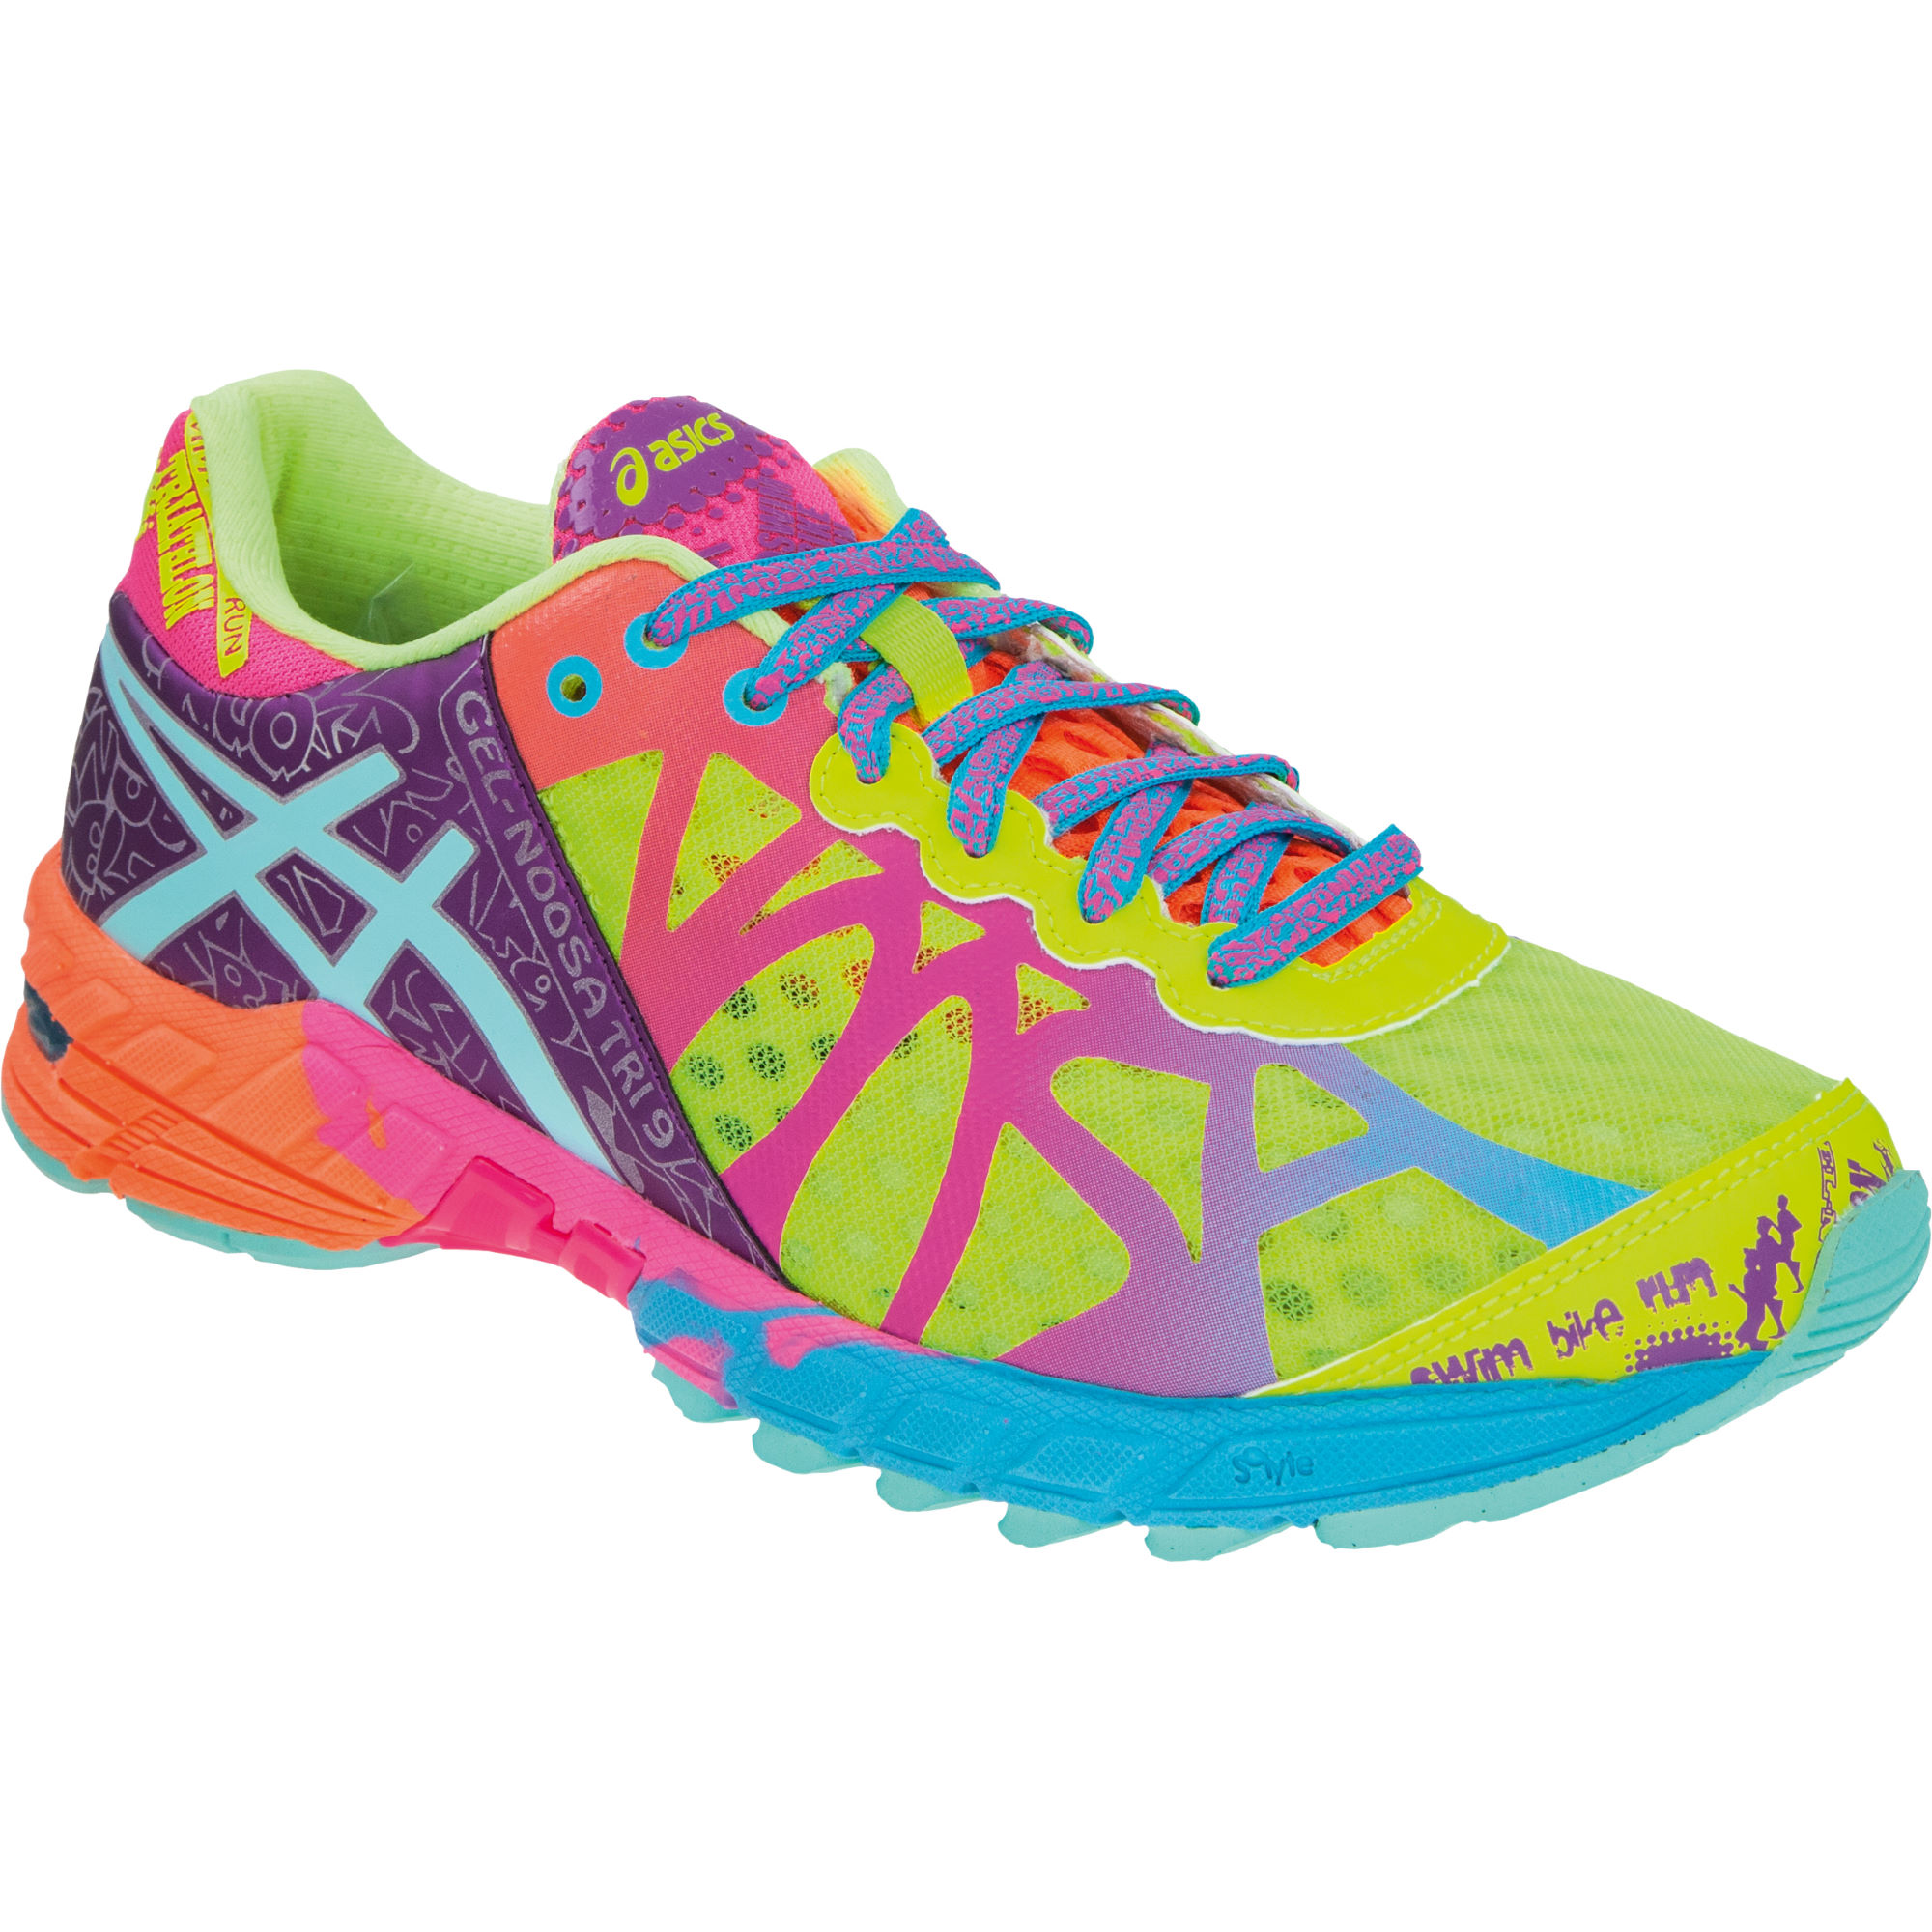 Cheap Asics Shoes For Sale